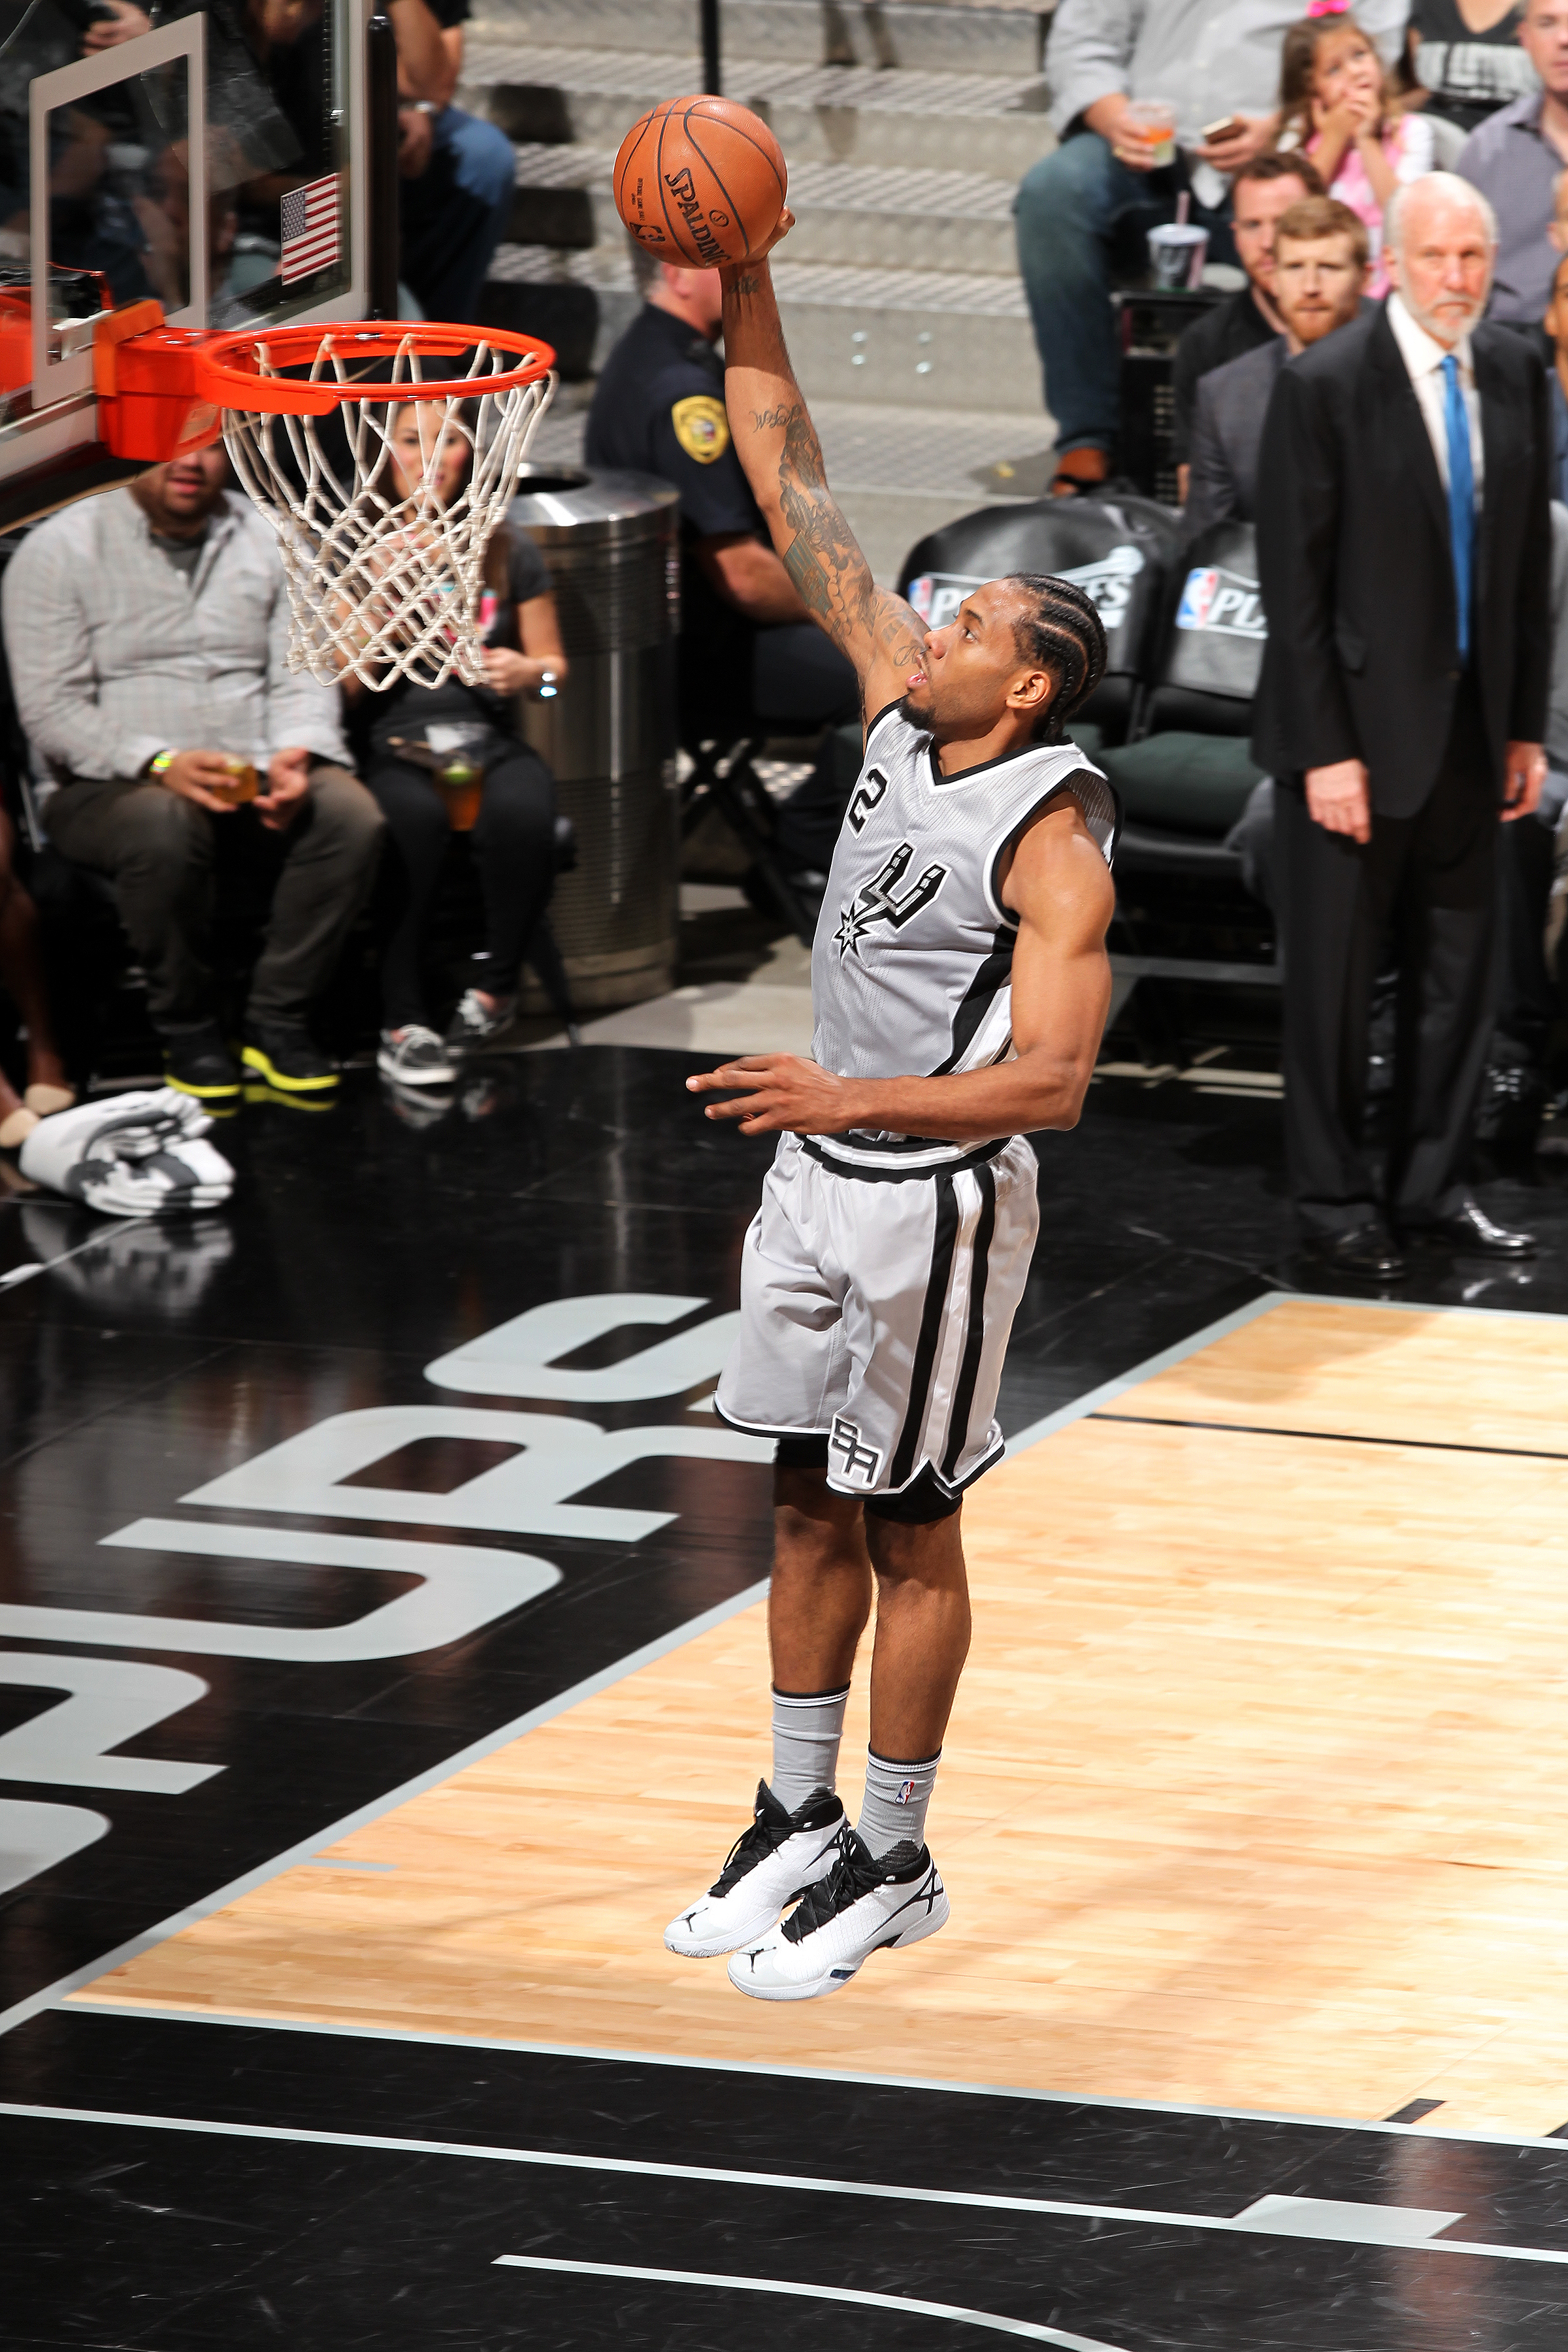 SAN ANTONIO, TX - APRIL 17: Kawhi Leonard #2 of the San Antonio Spurs goes for the lay up during the game against the Memphis Grizzlies in Game One of Round One of the 2016 NBA Playoffs on April 17, 2016 at the AT&T Center in San Antonio, Texas. (Photo by